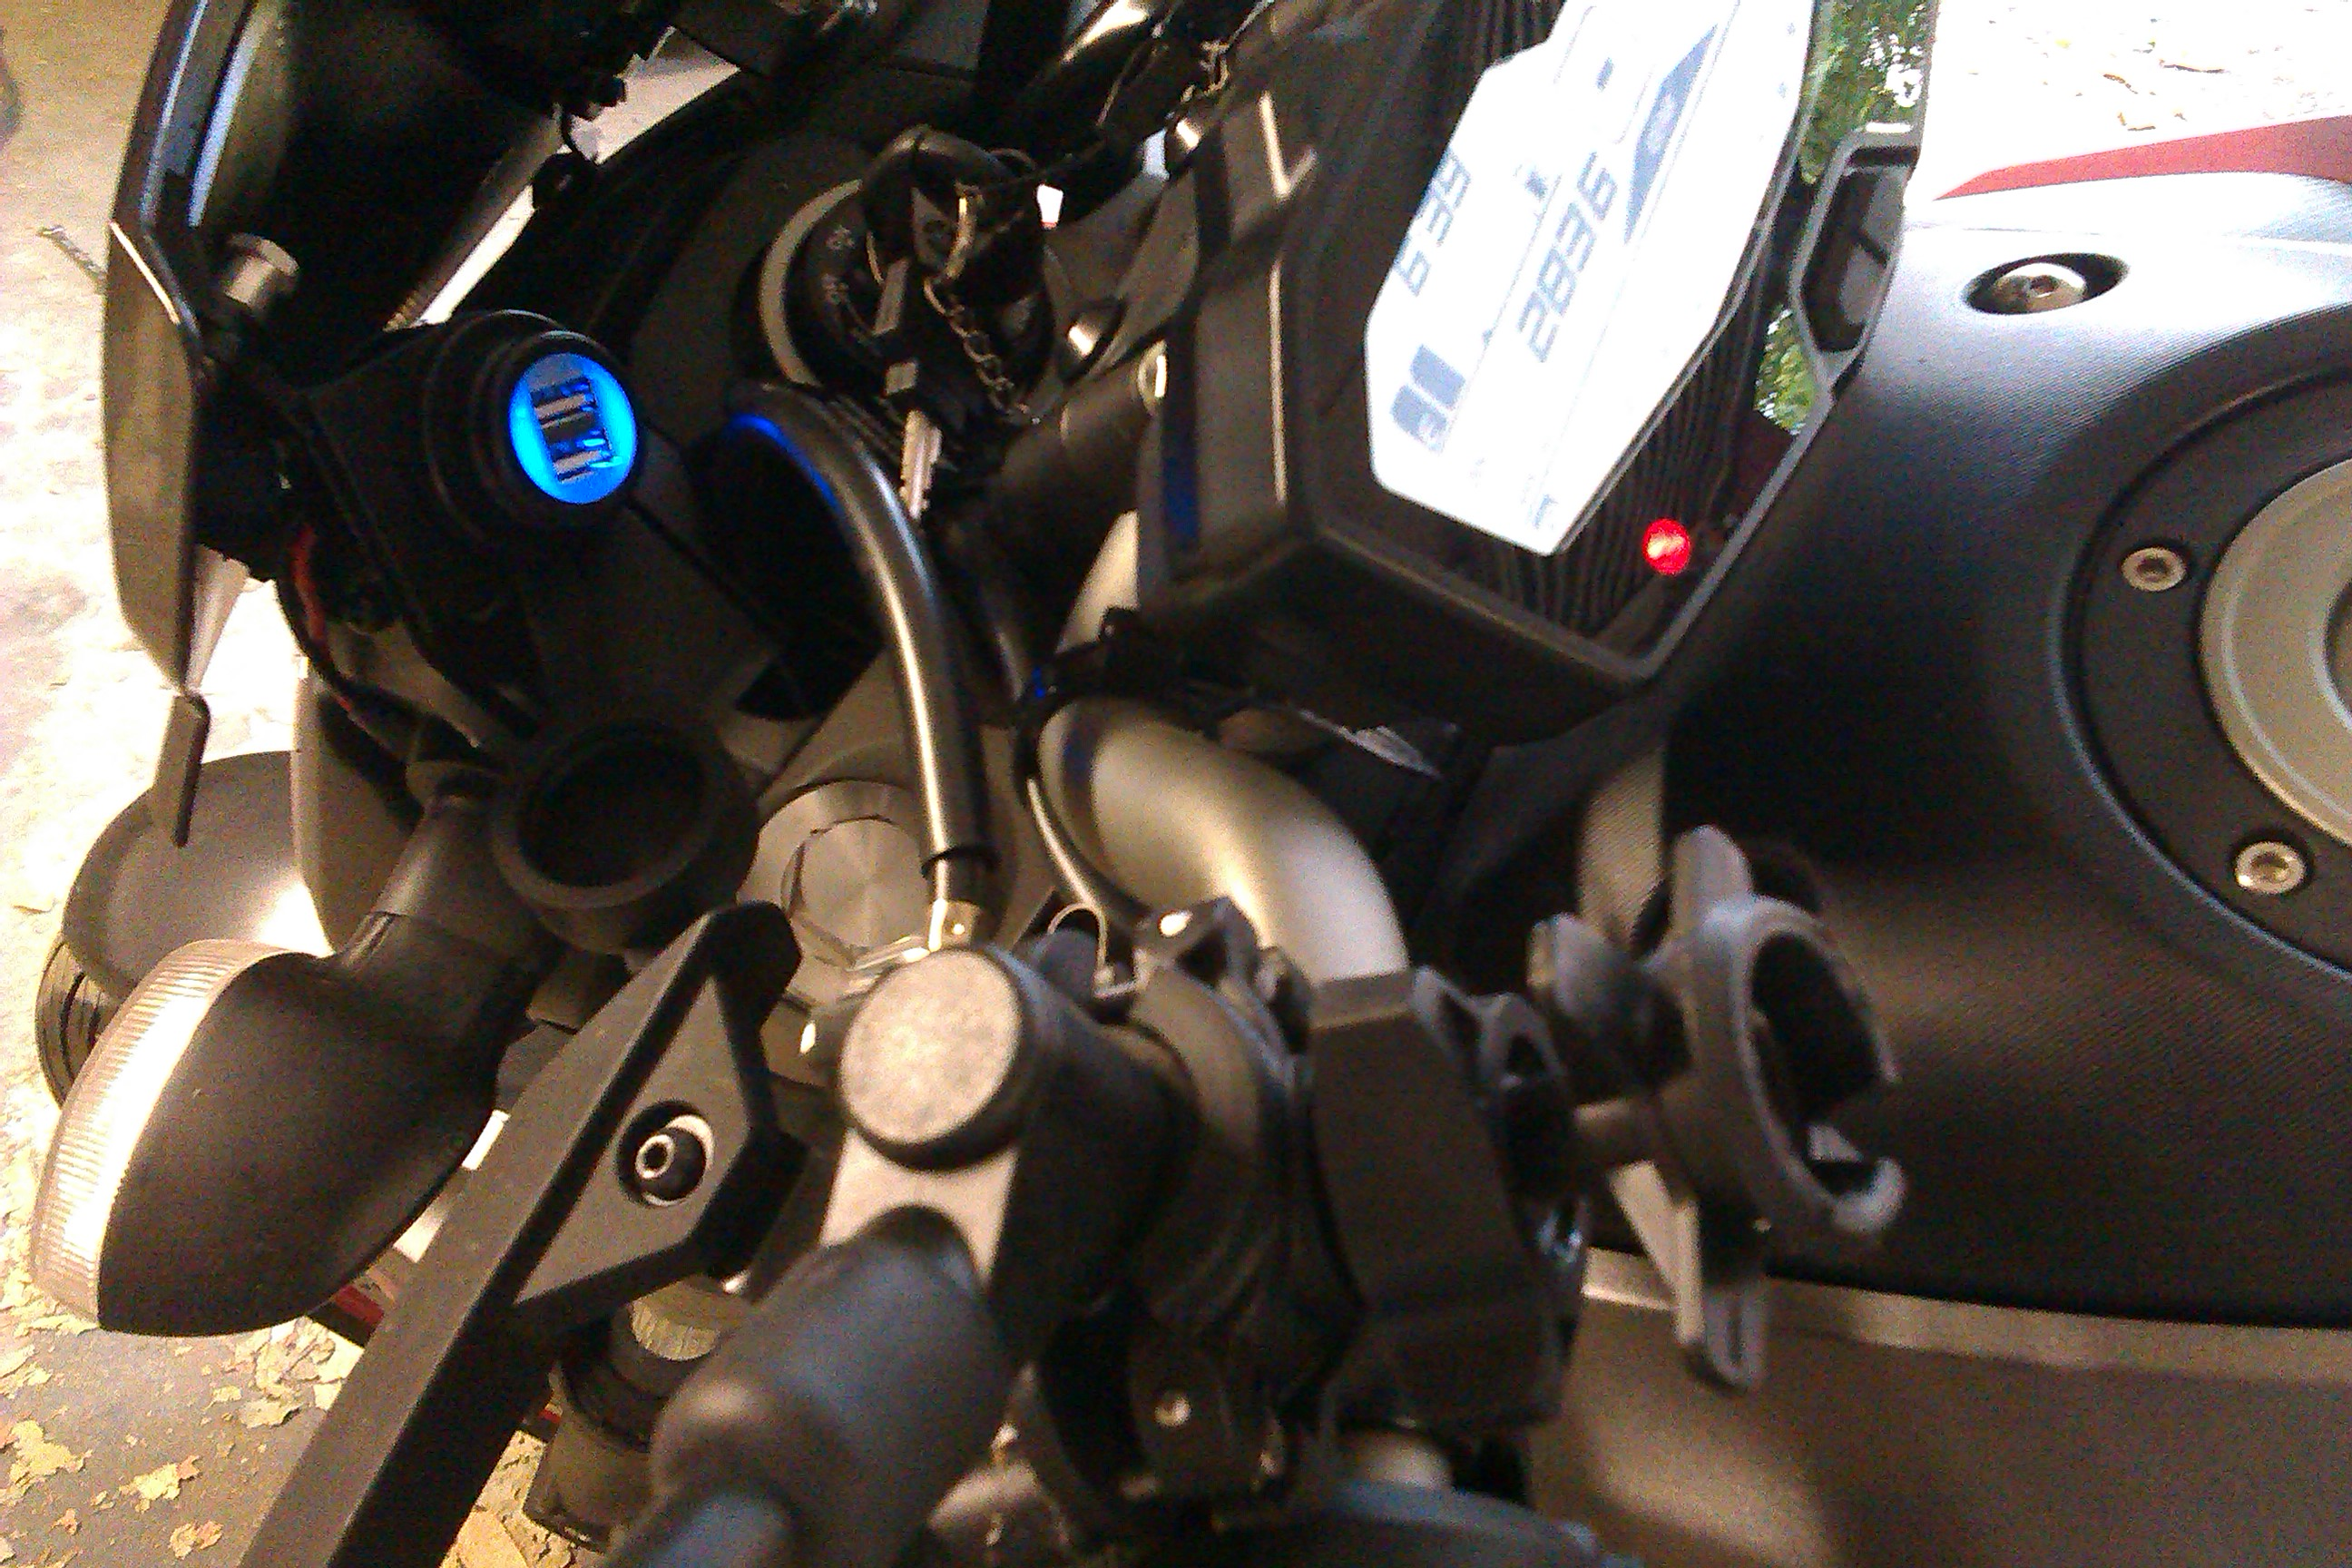 best sell quality products best deals on Moto Cage de Quentin (Muradin) - Forum Yamaha MT-07 France